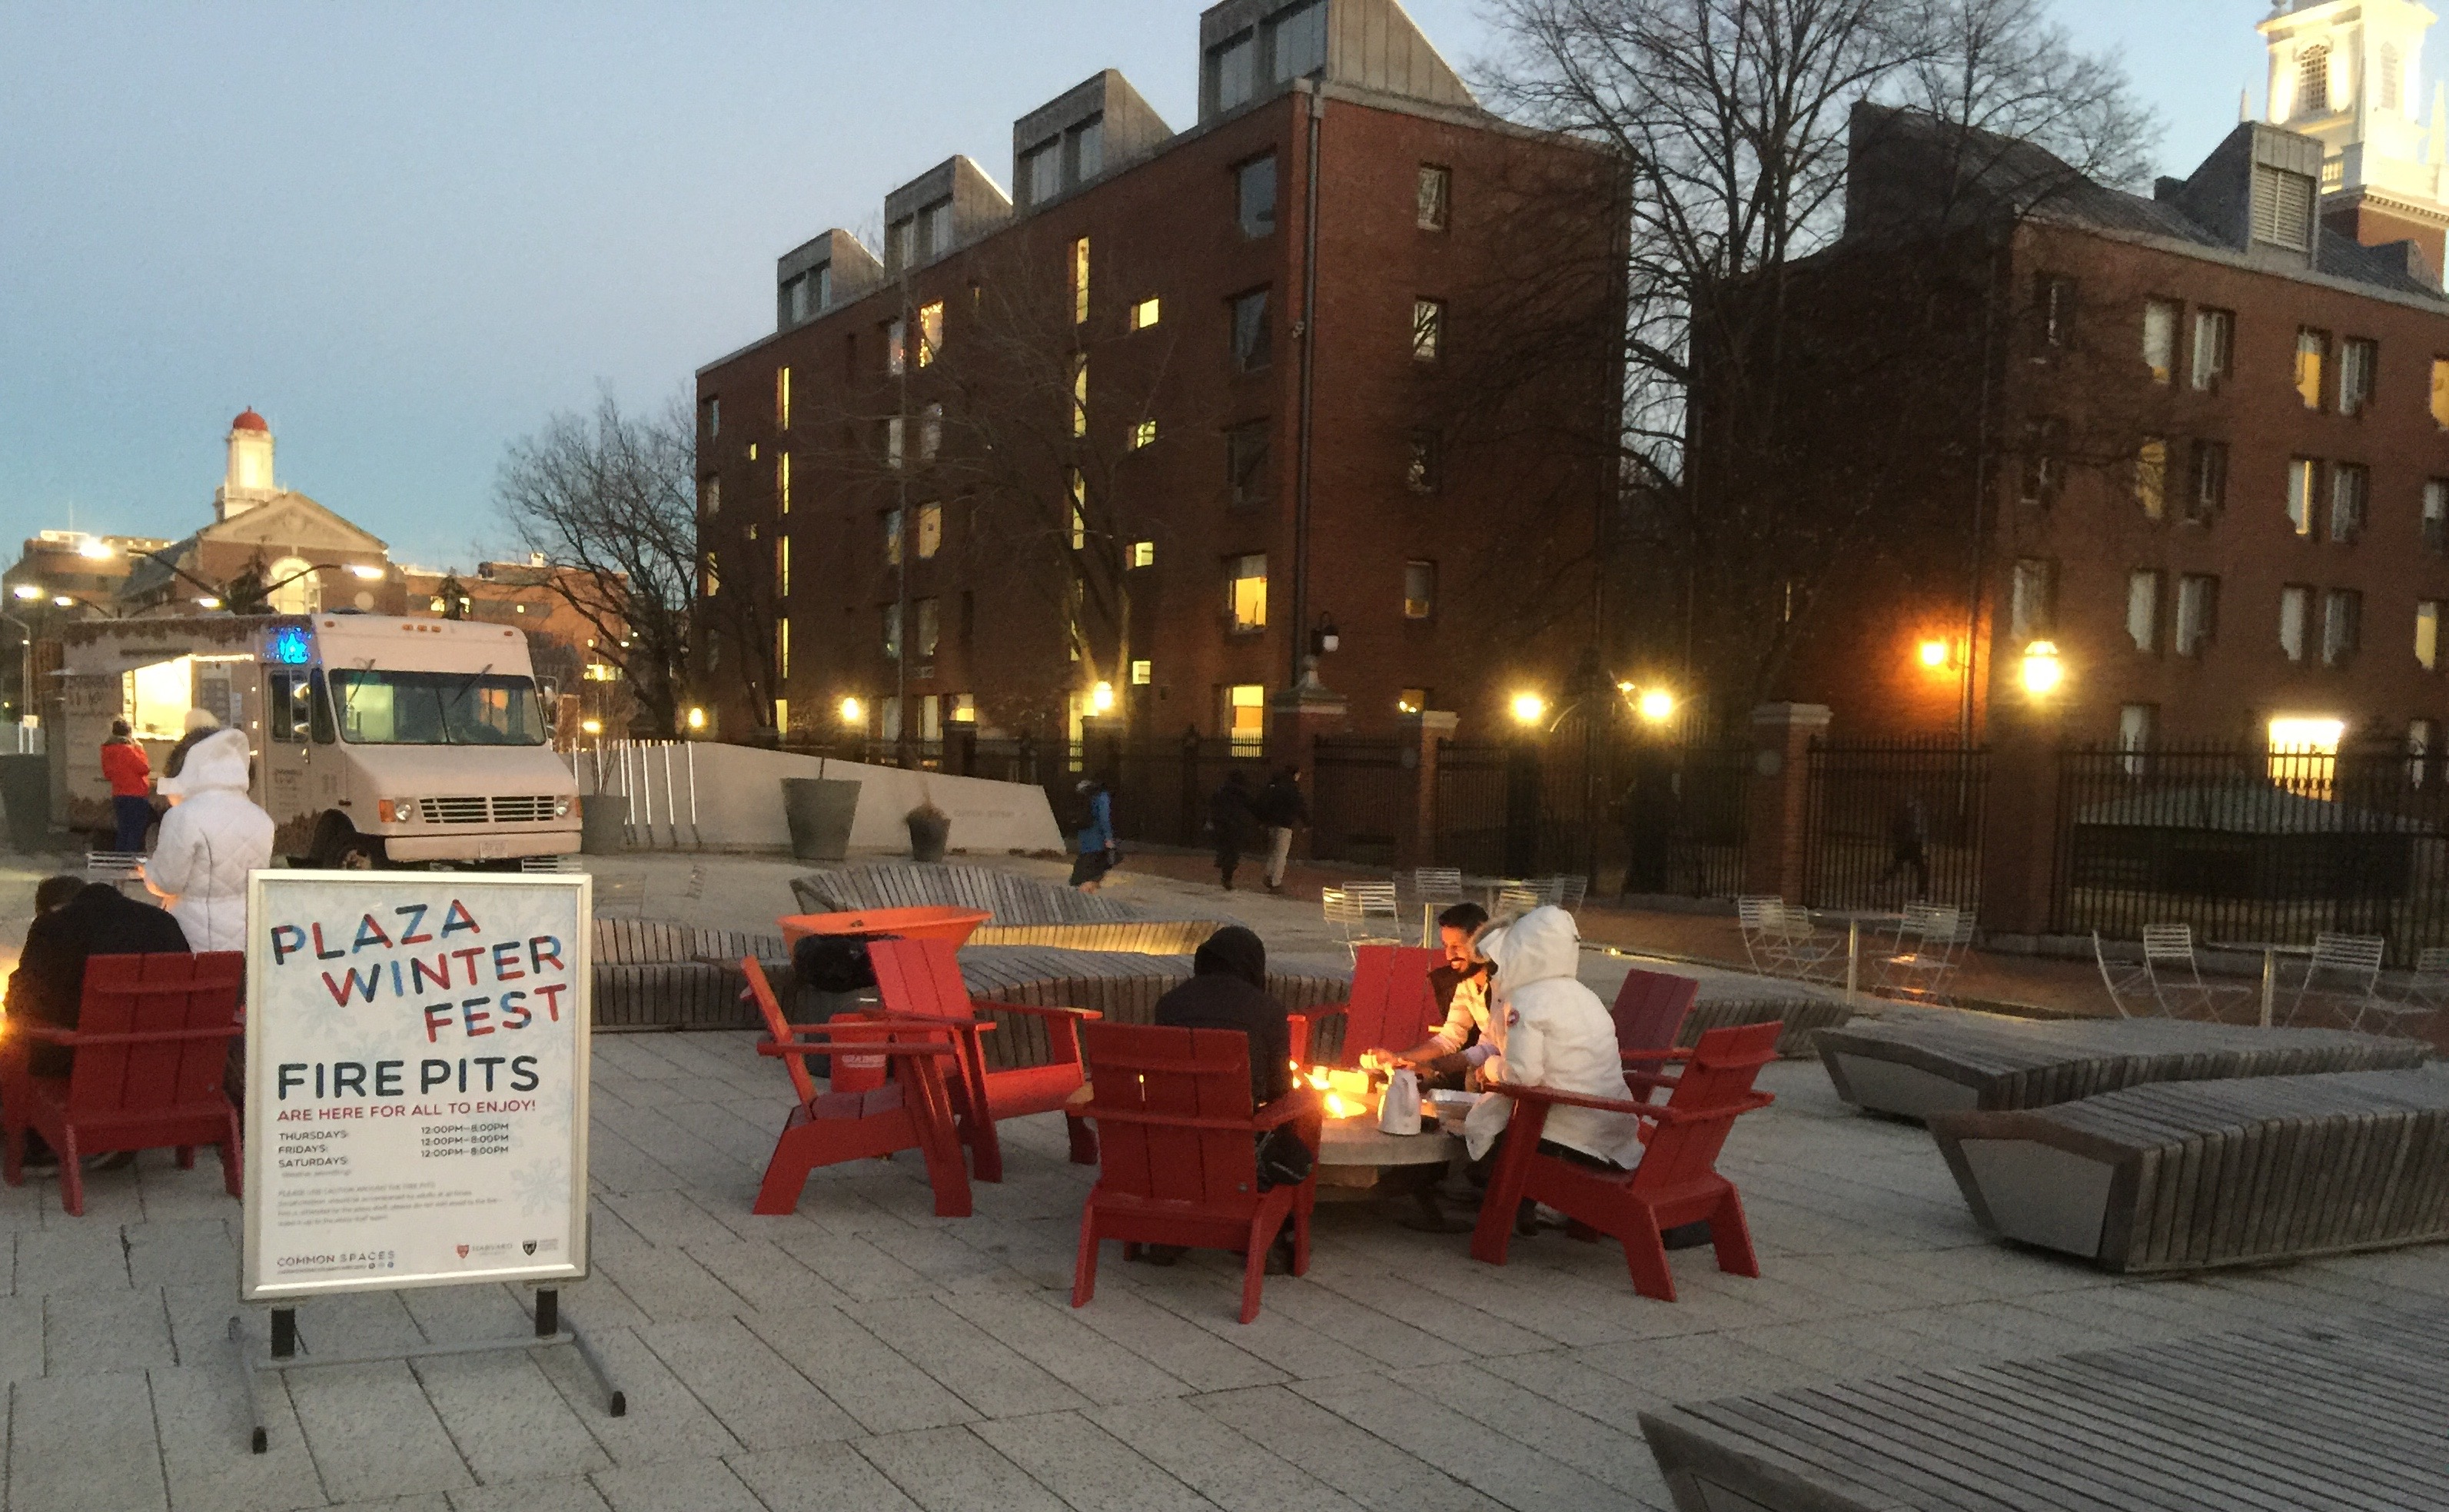 Winter Fire Pits on the Harvard Campus